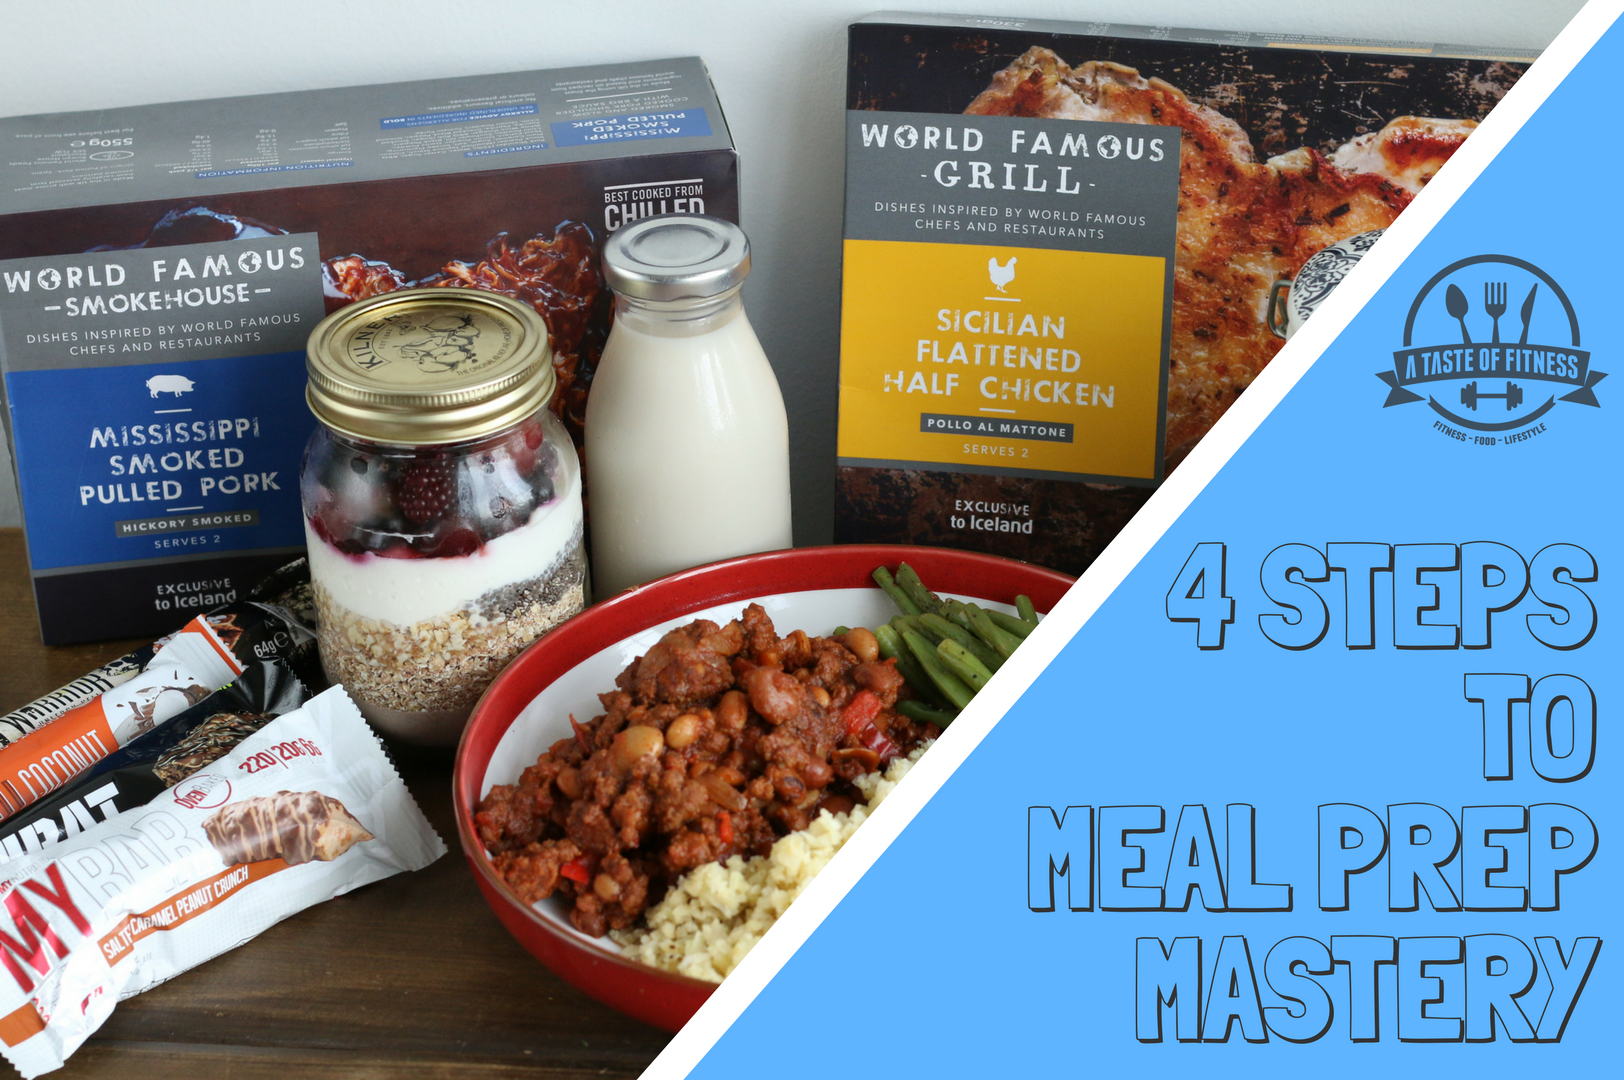 4 Steps to Meal Prep Mastery